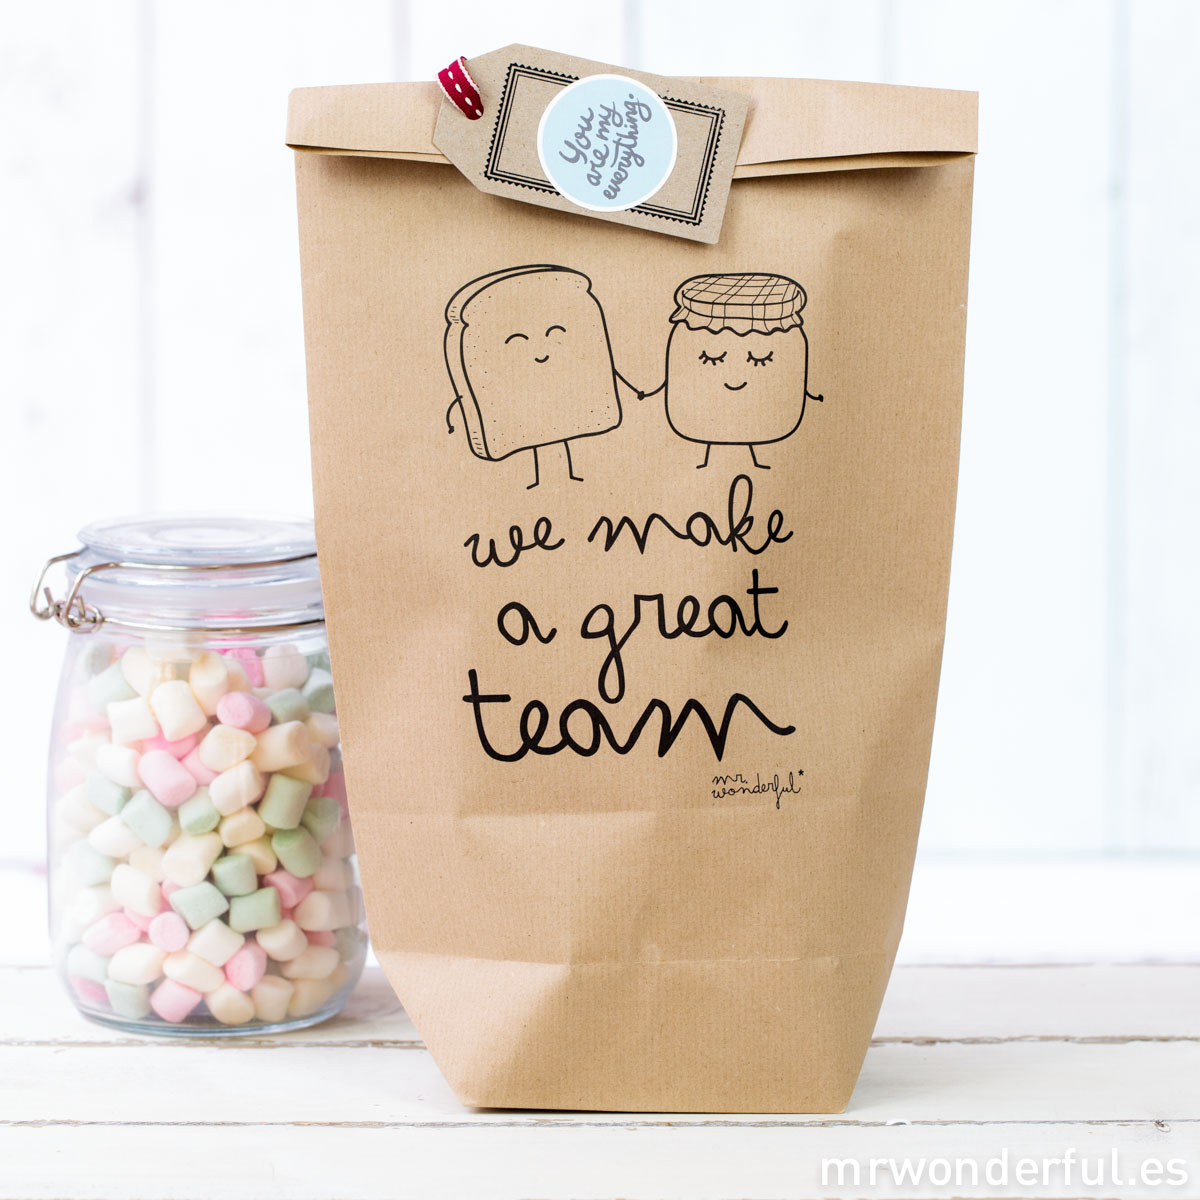 mrwonderful_kraft32_bolsa-kraft_we-make-great-team_ing-8